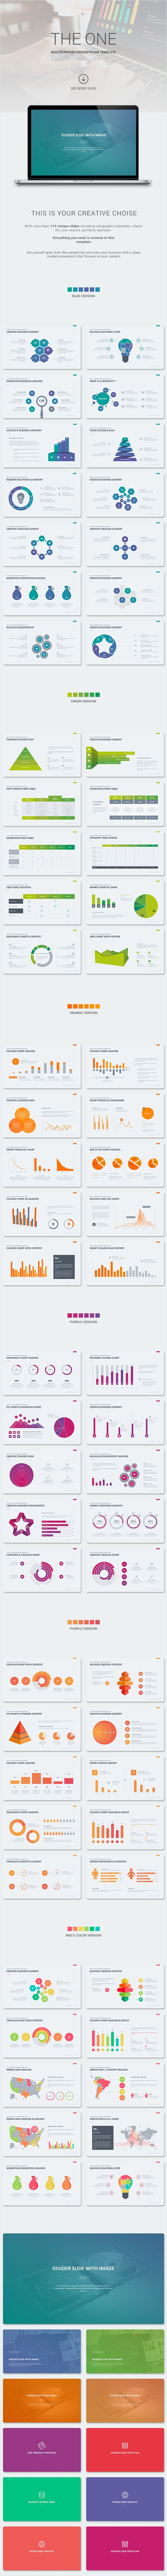 The One - Unique PowerPoint Template #design Download: http://graphicriver.net/item/the-one-unique-template/12141806?ref=ksioks